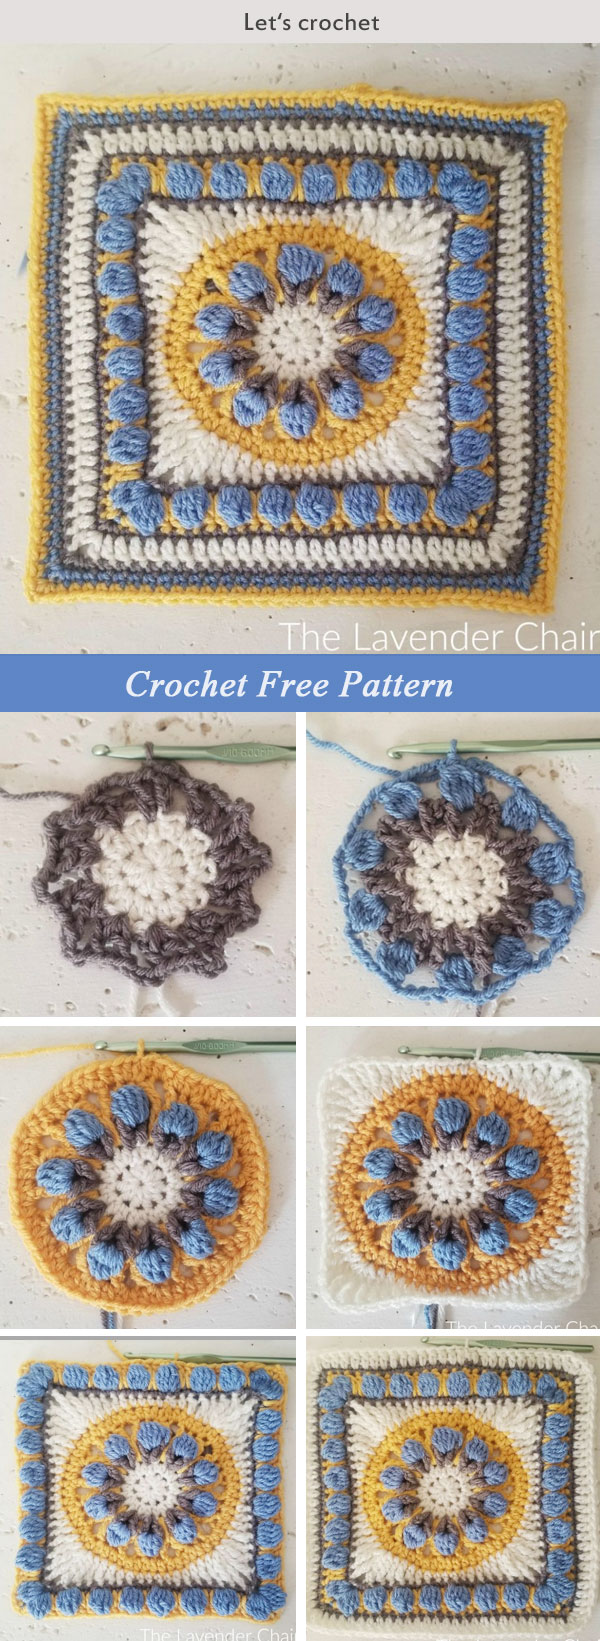 Tuscan Flower Square Free Crochet Pattern